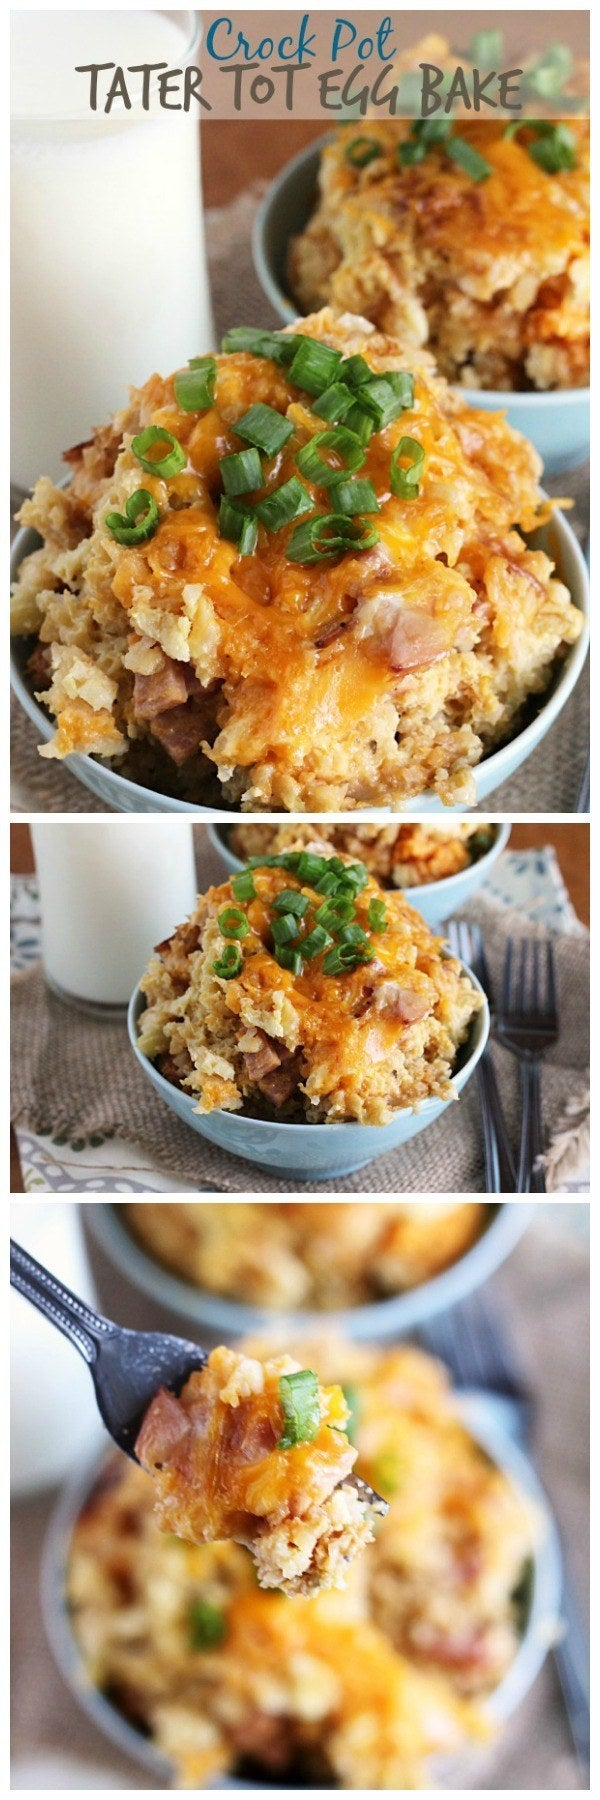 Now you can enjoy tater tots every meal of the day. Click here for recipe.